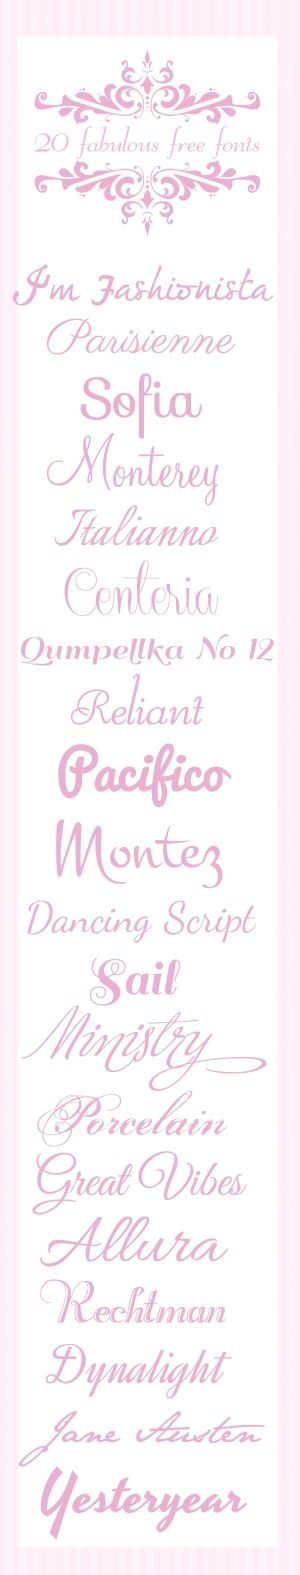 Free Fonts by alicia